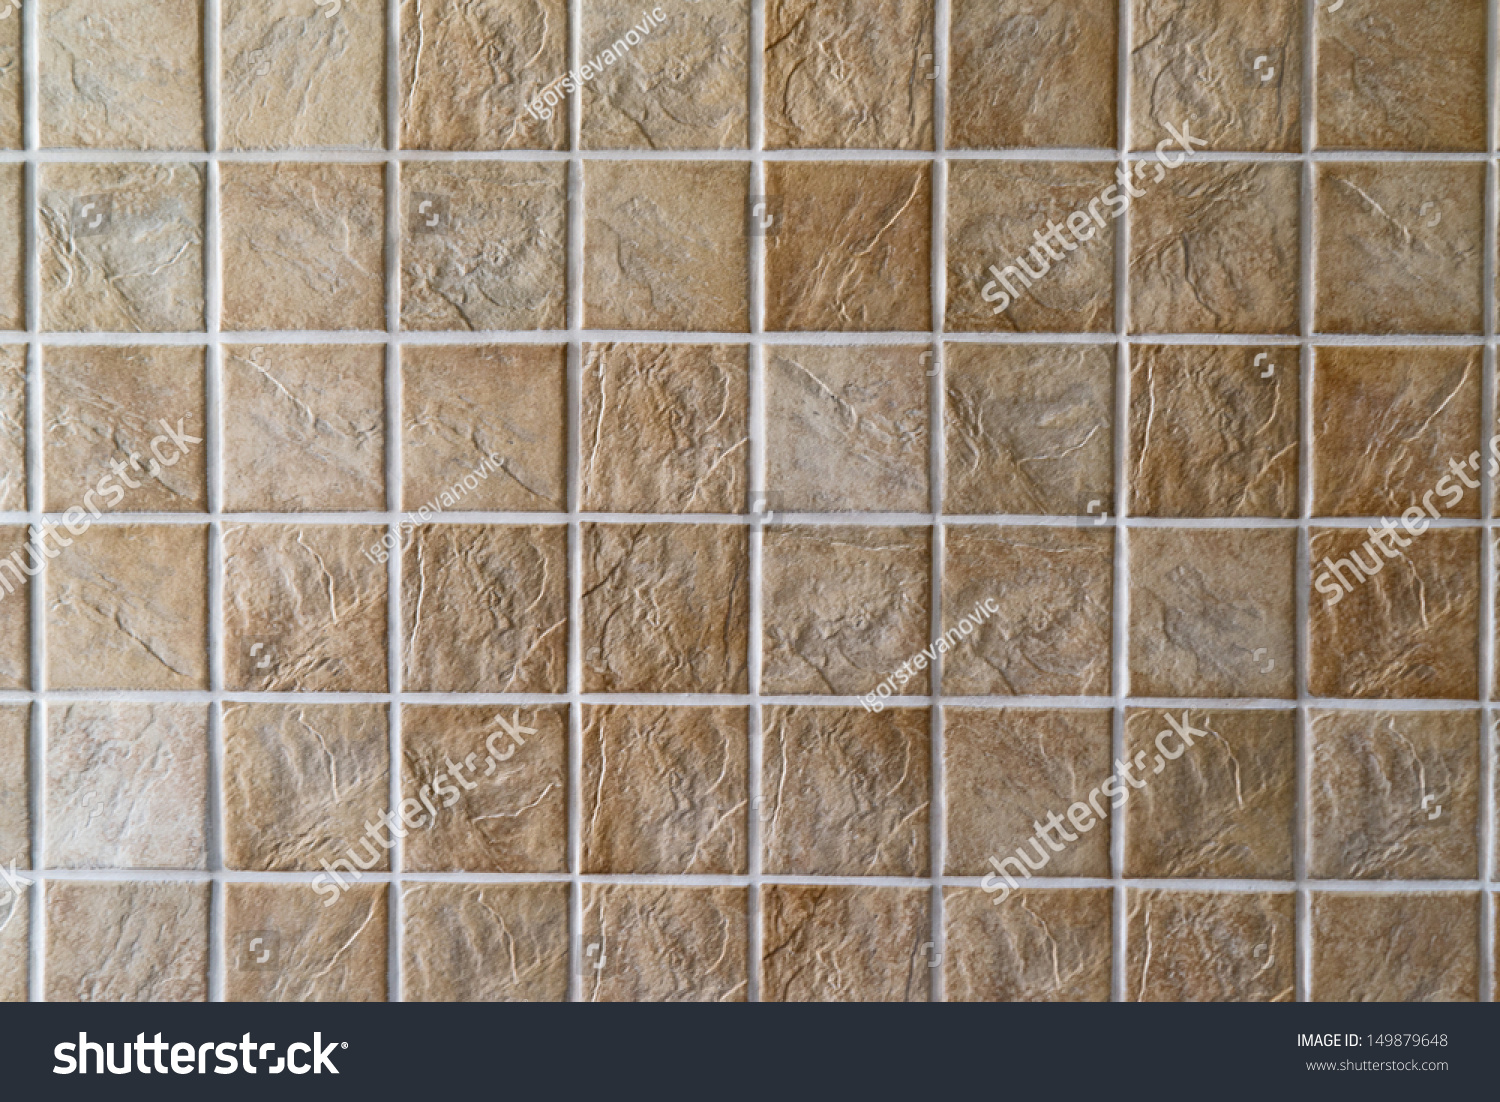 Beige square shaped ceramic tiles wall stock photo 149879648 beige square shaped ceramic tiles for wall or floor covering dailygadgetfo Image collections